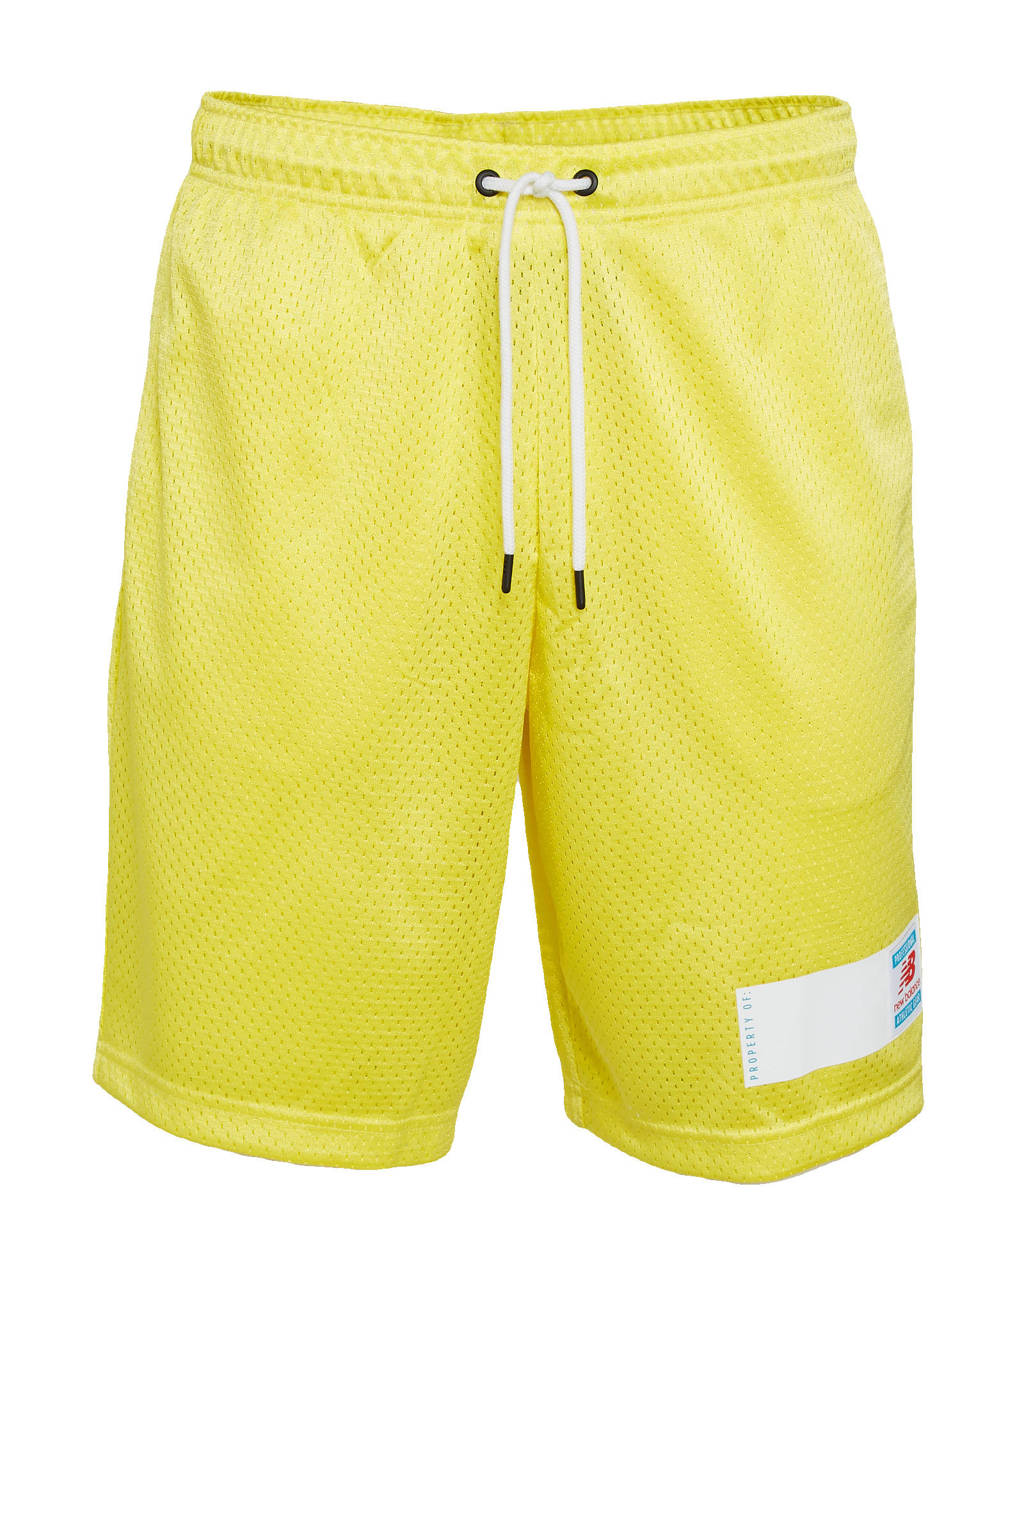 New Balance short geel, Geel